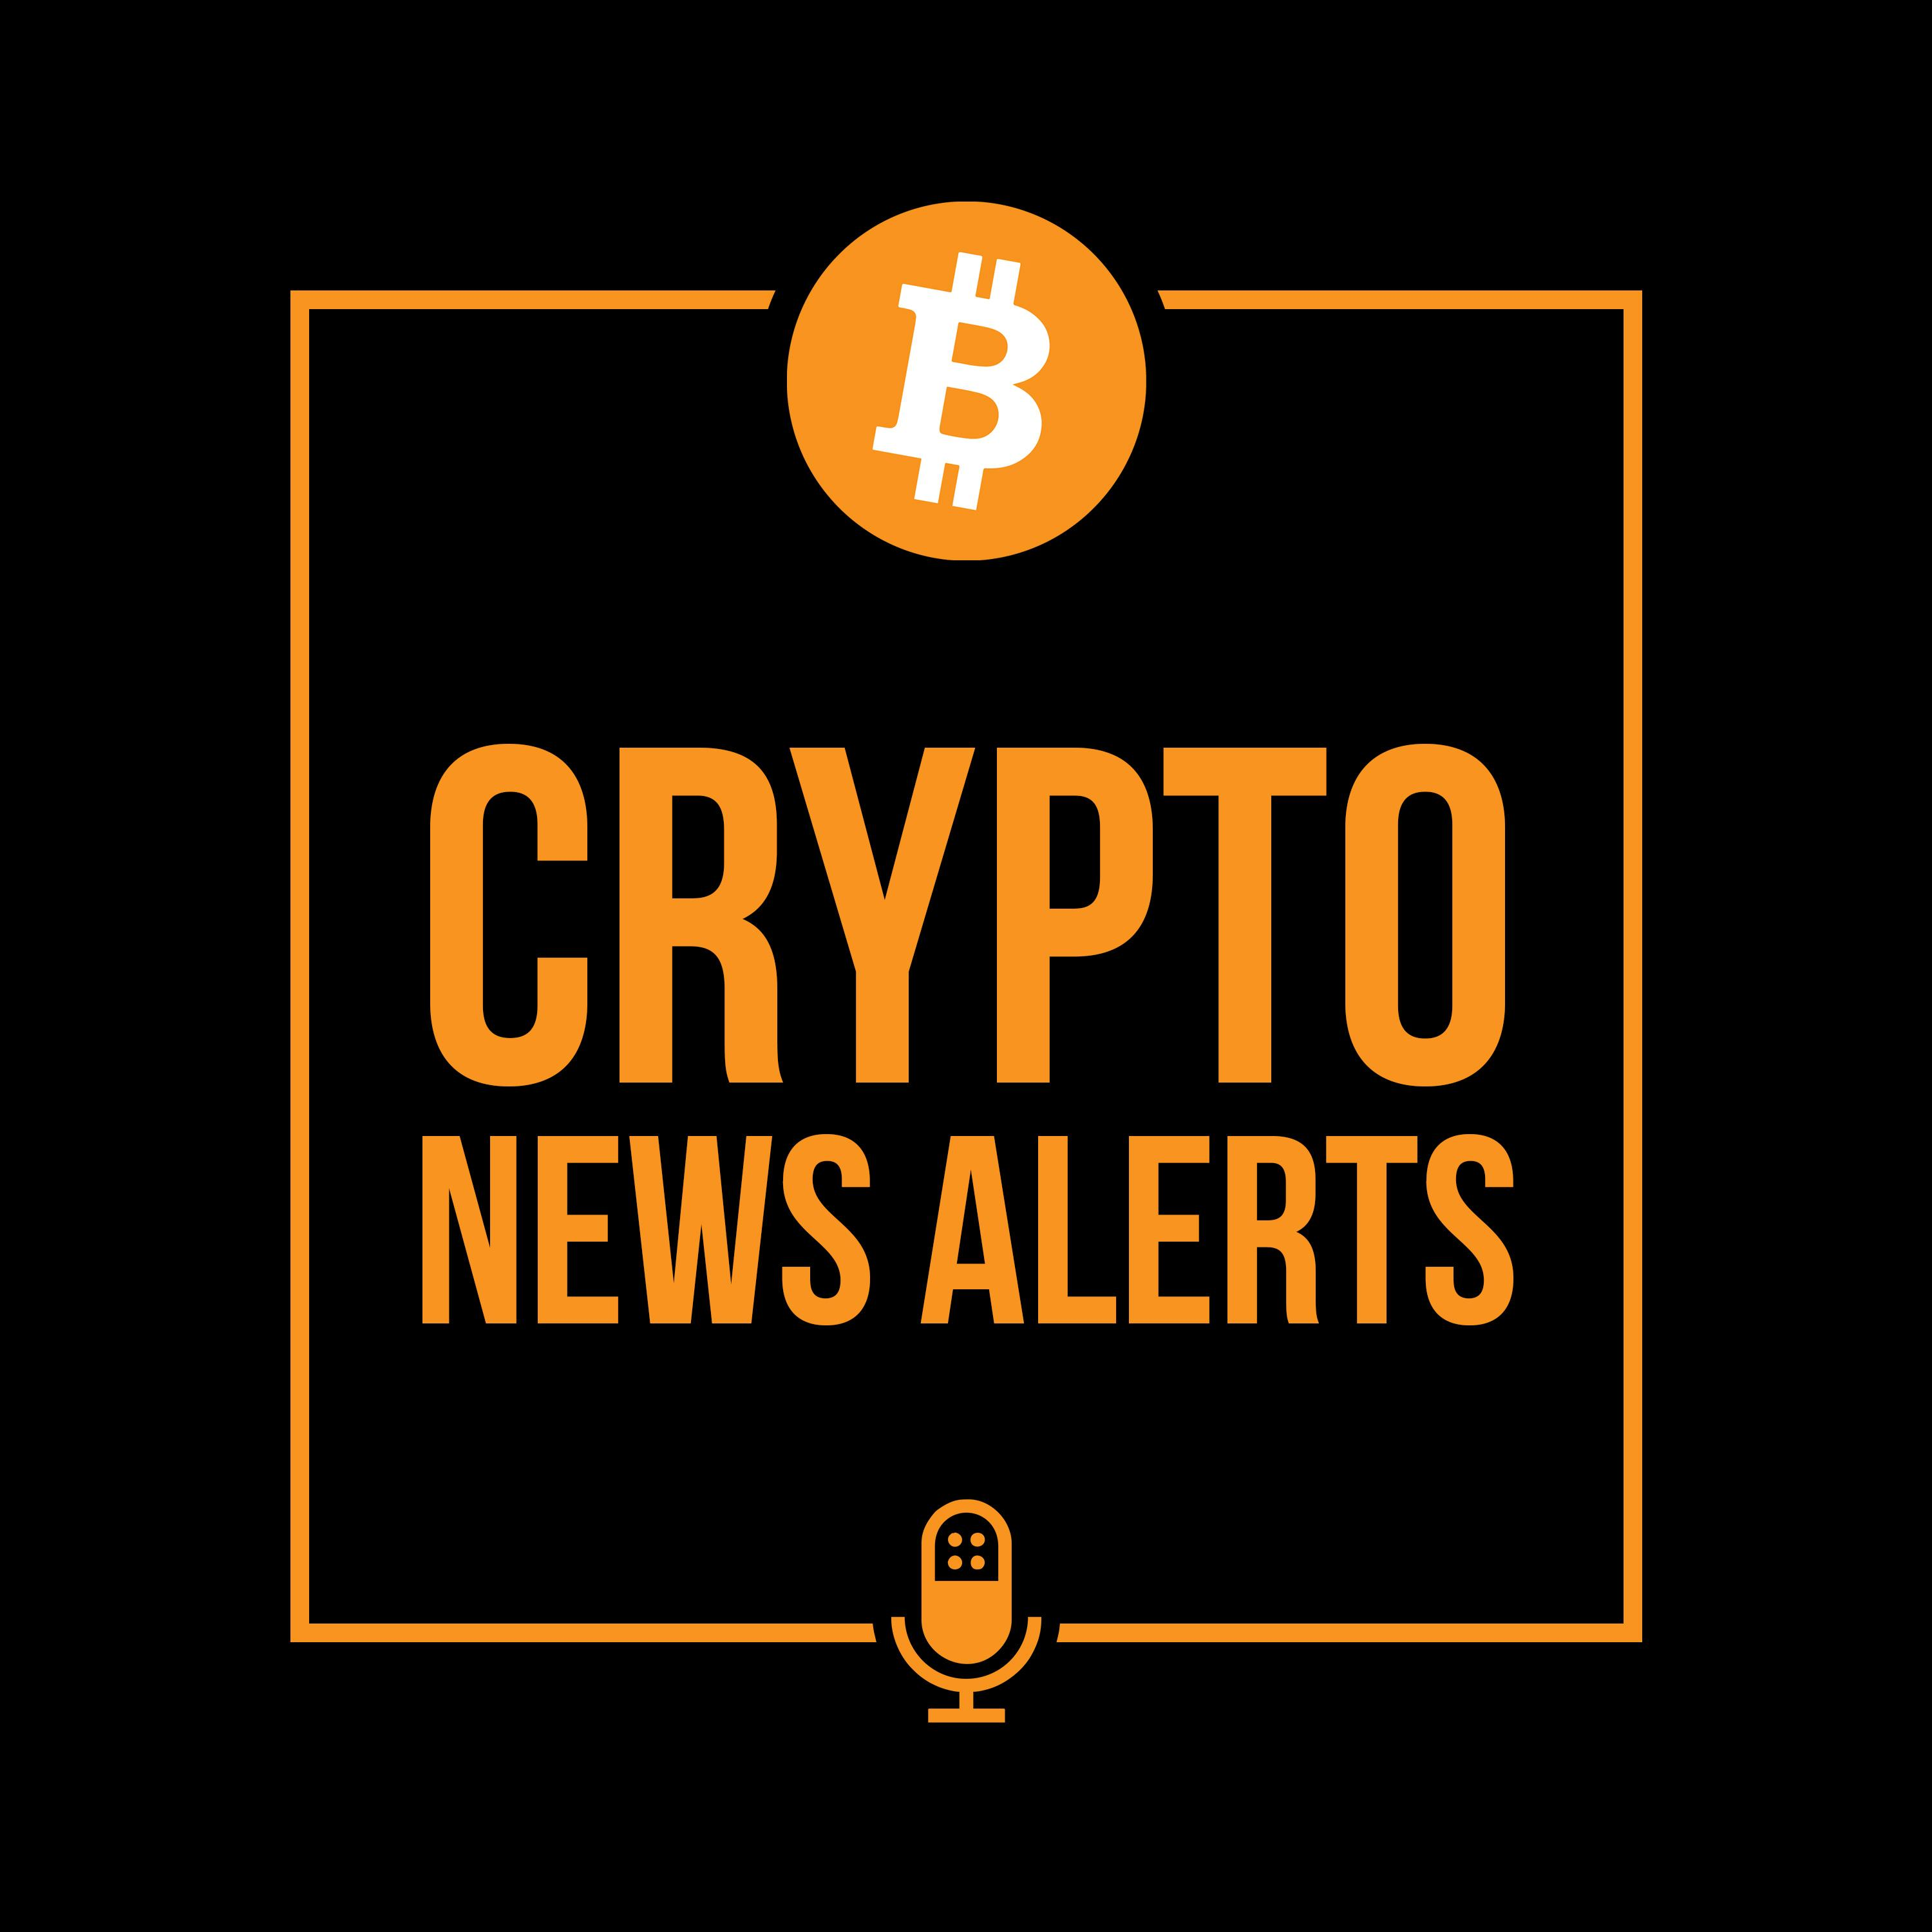 702: UPDATE: BITCOIN CAN HIT $450K IN 2021, BEST AND WORST-CASE BTC SCENARIOS REVEALED BY S2F CREATOR!!!!